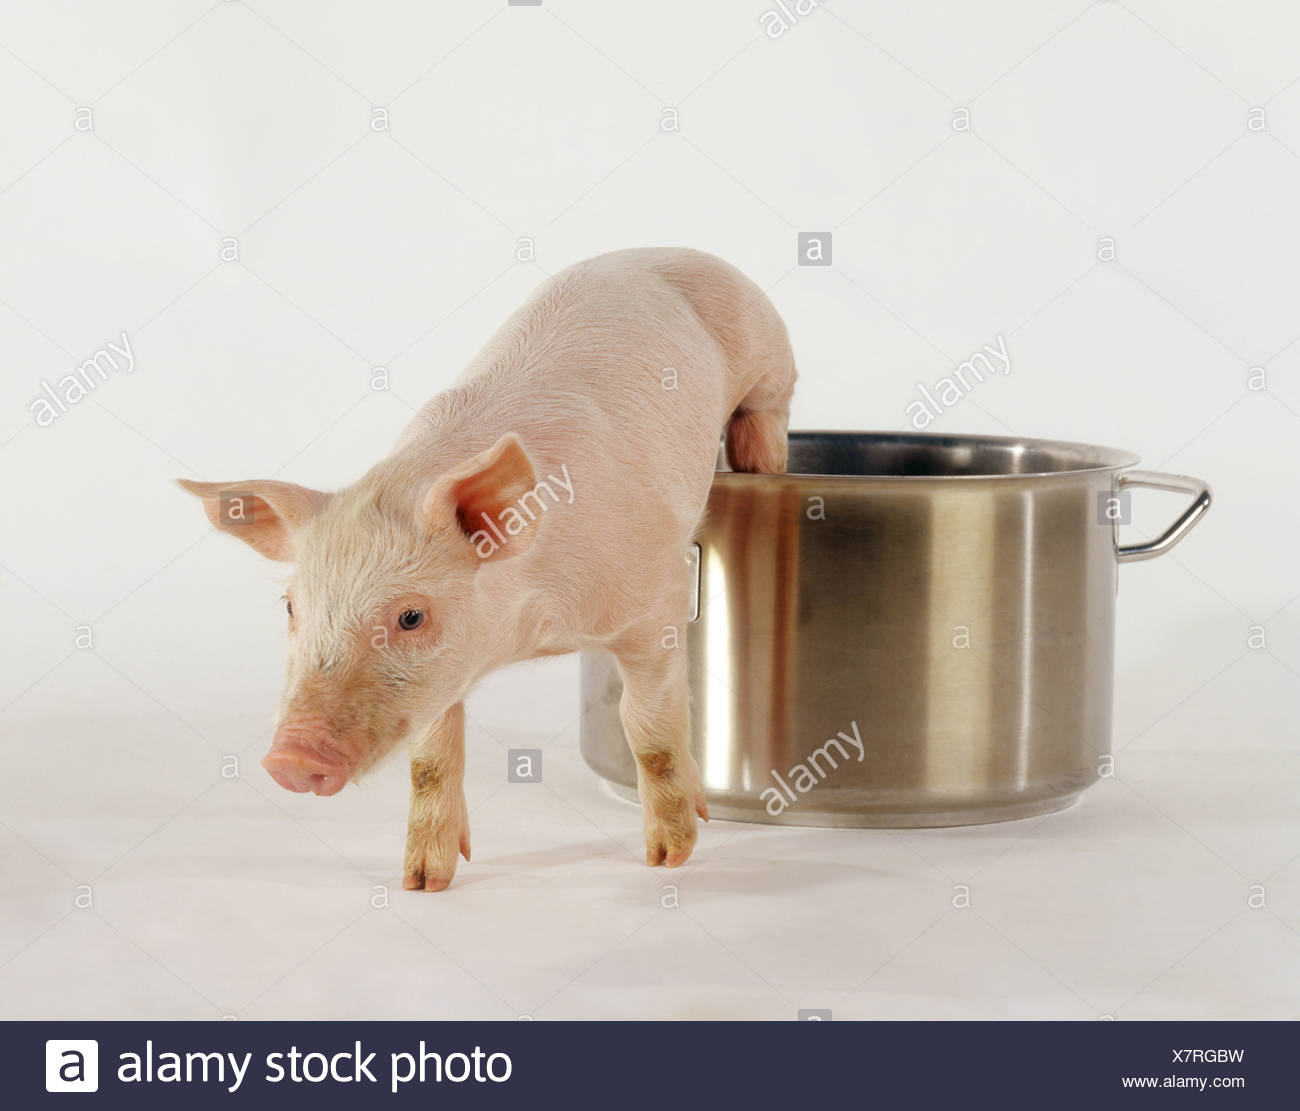 piglet jumping out of cooking pot - Stock Image